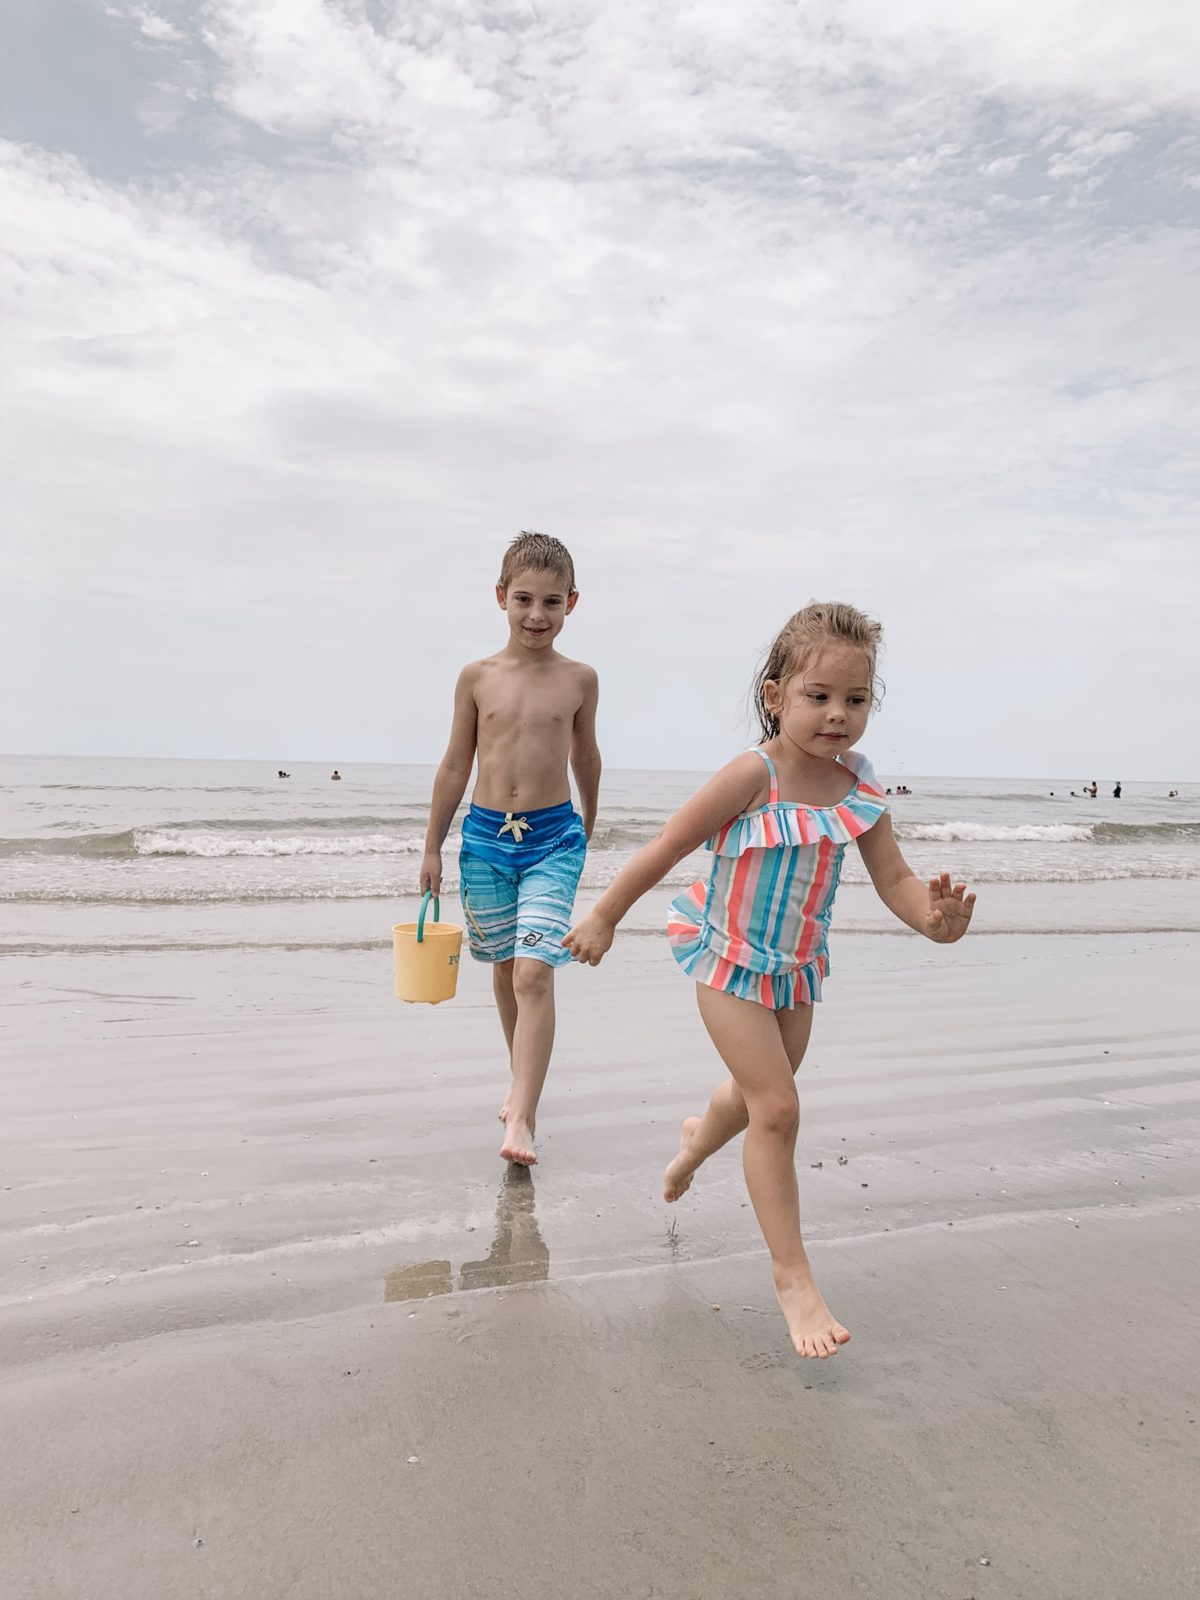 48 Hours in Galveston - siblings playing in the beach